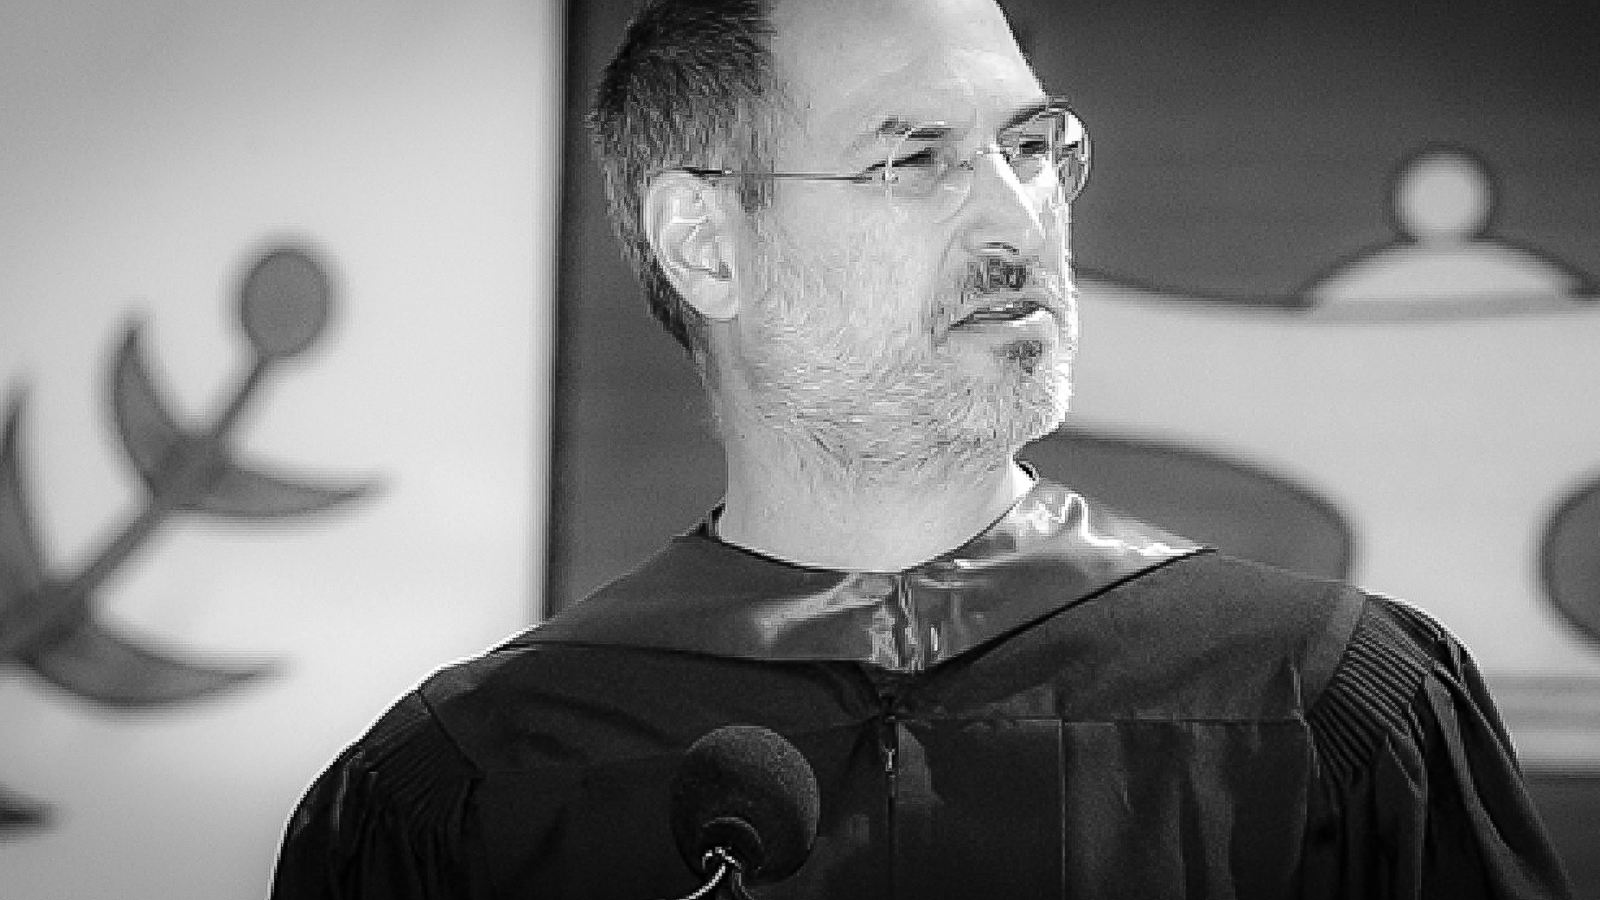 According to Steve Jobs, this 1 thing separates the doers from the dreamers